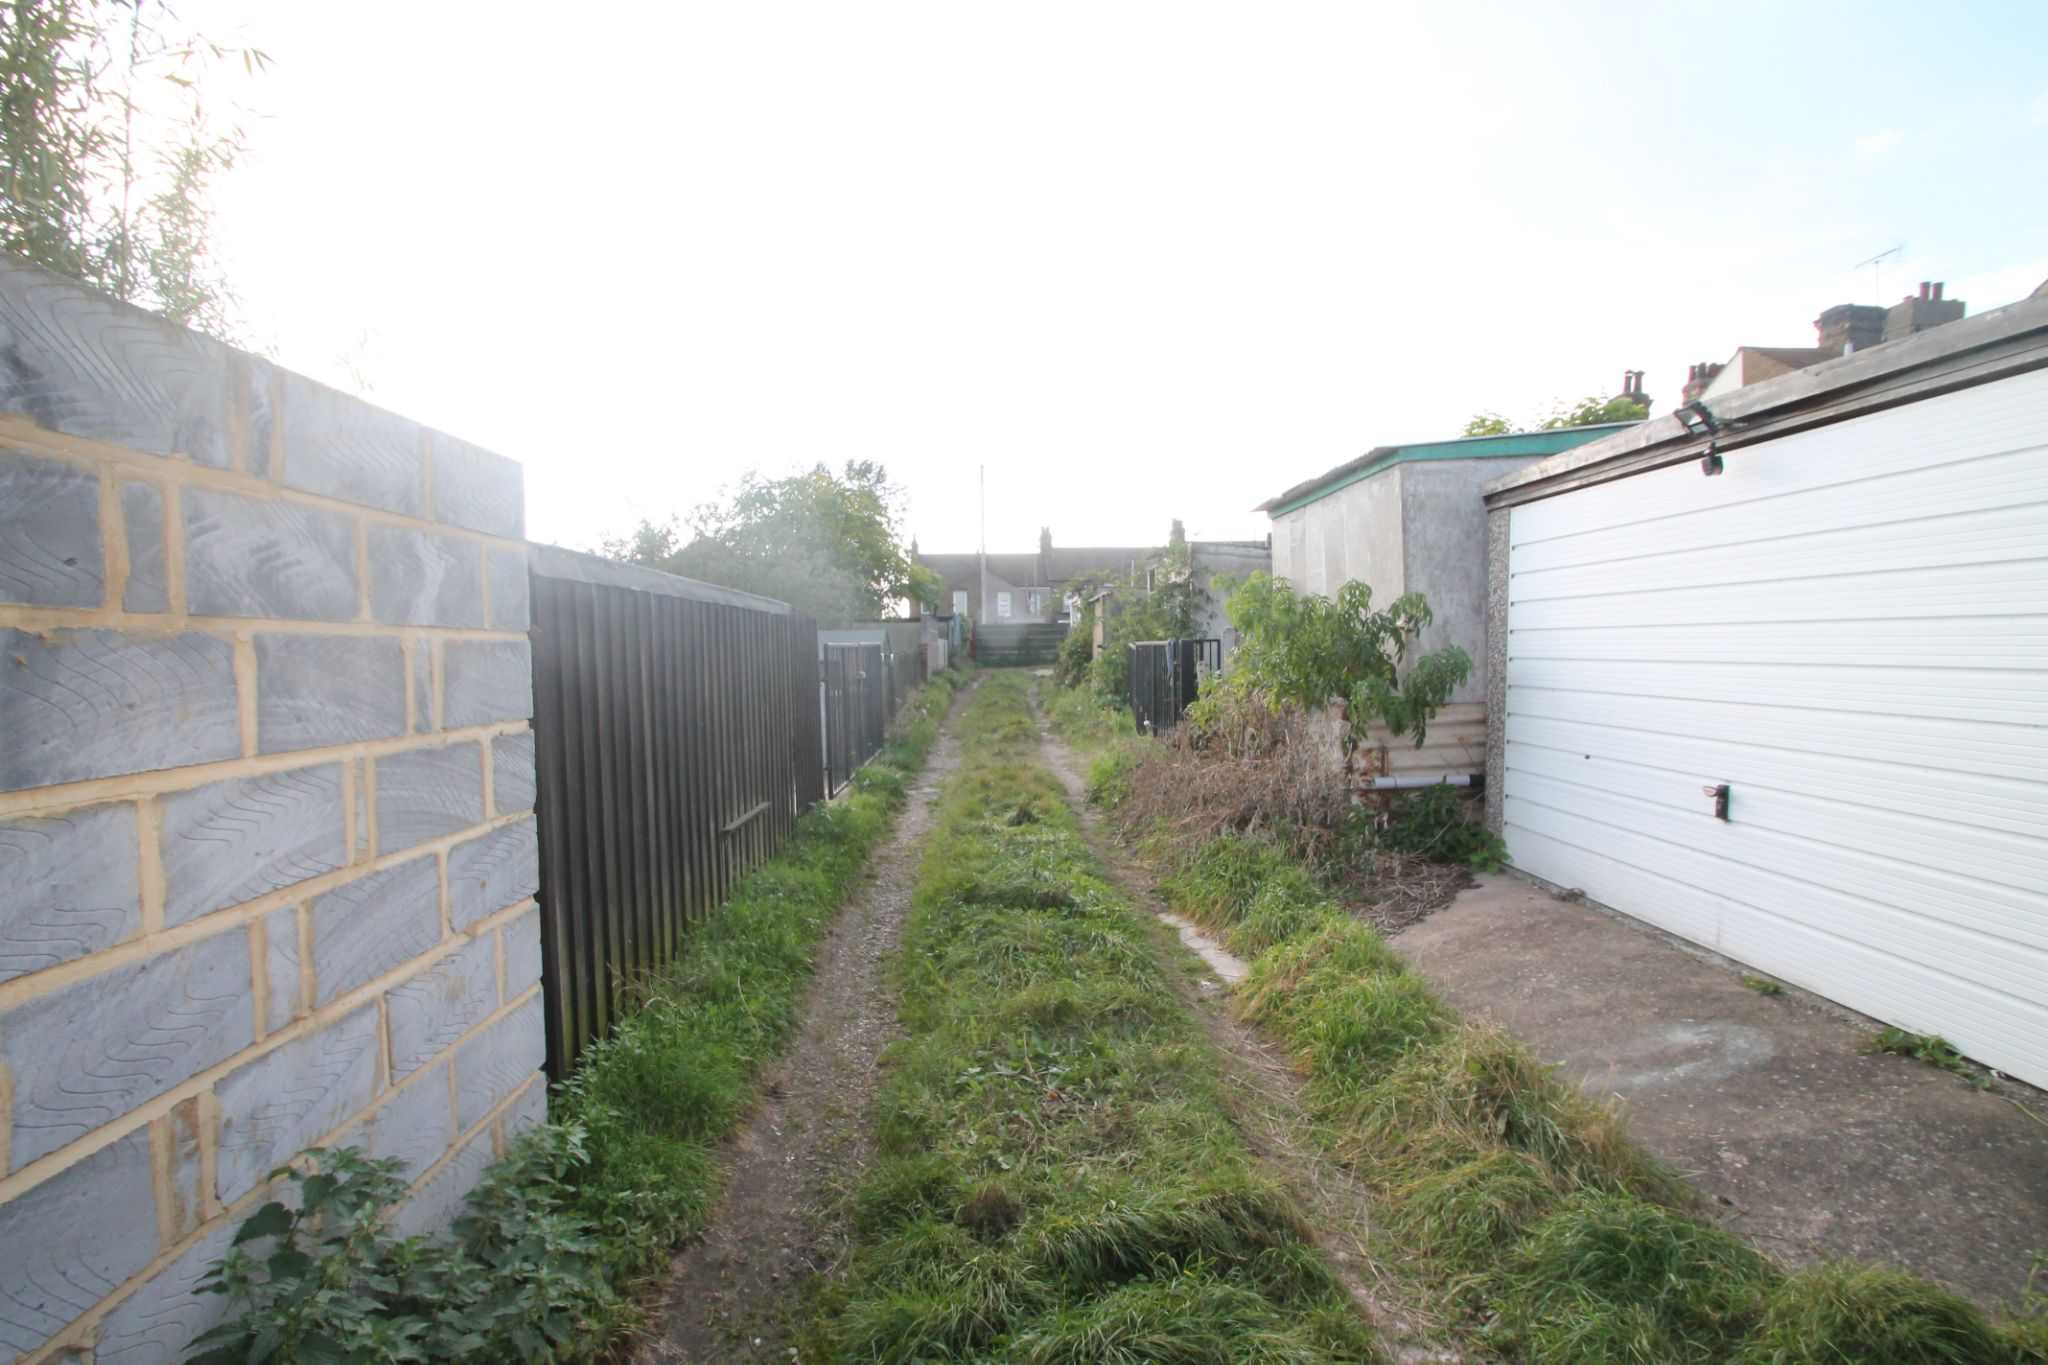 3 Bedroom Mid Terraced House For Sale - Off Road Access